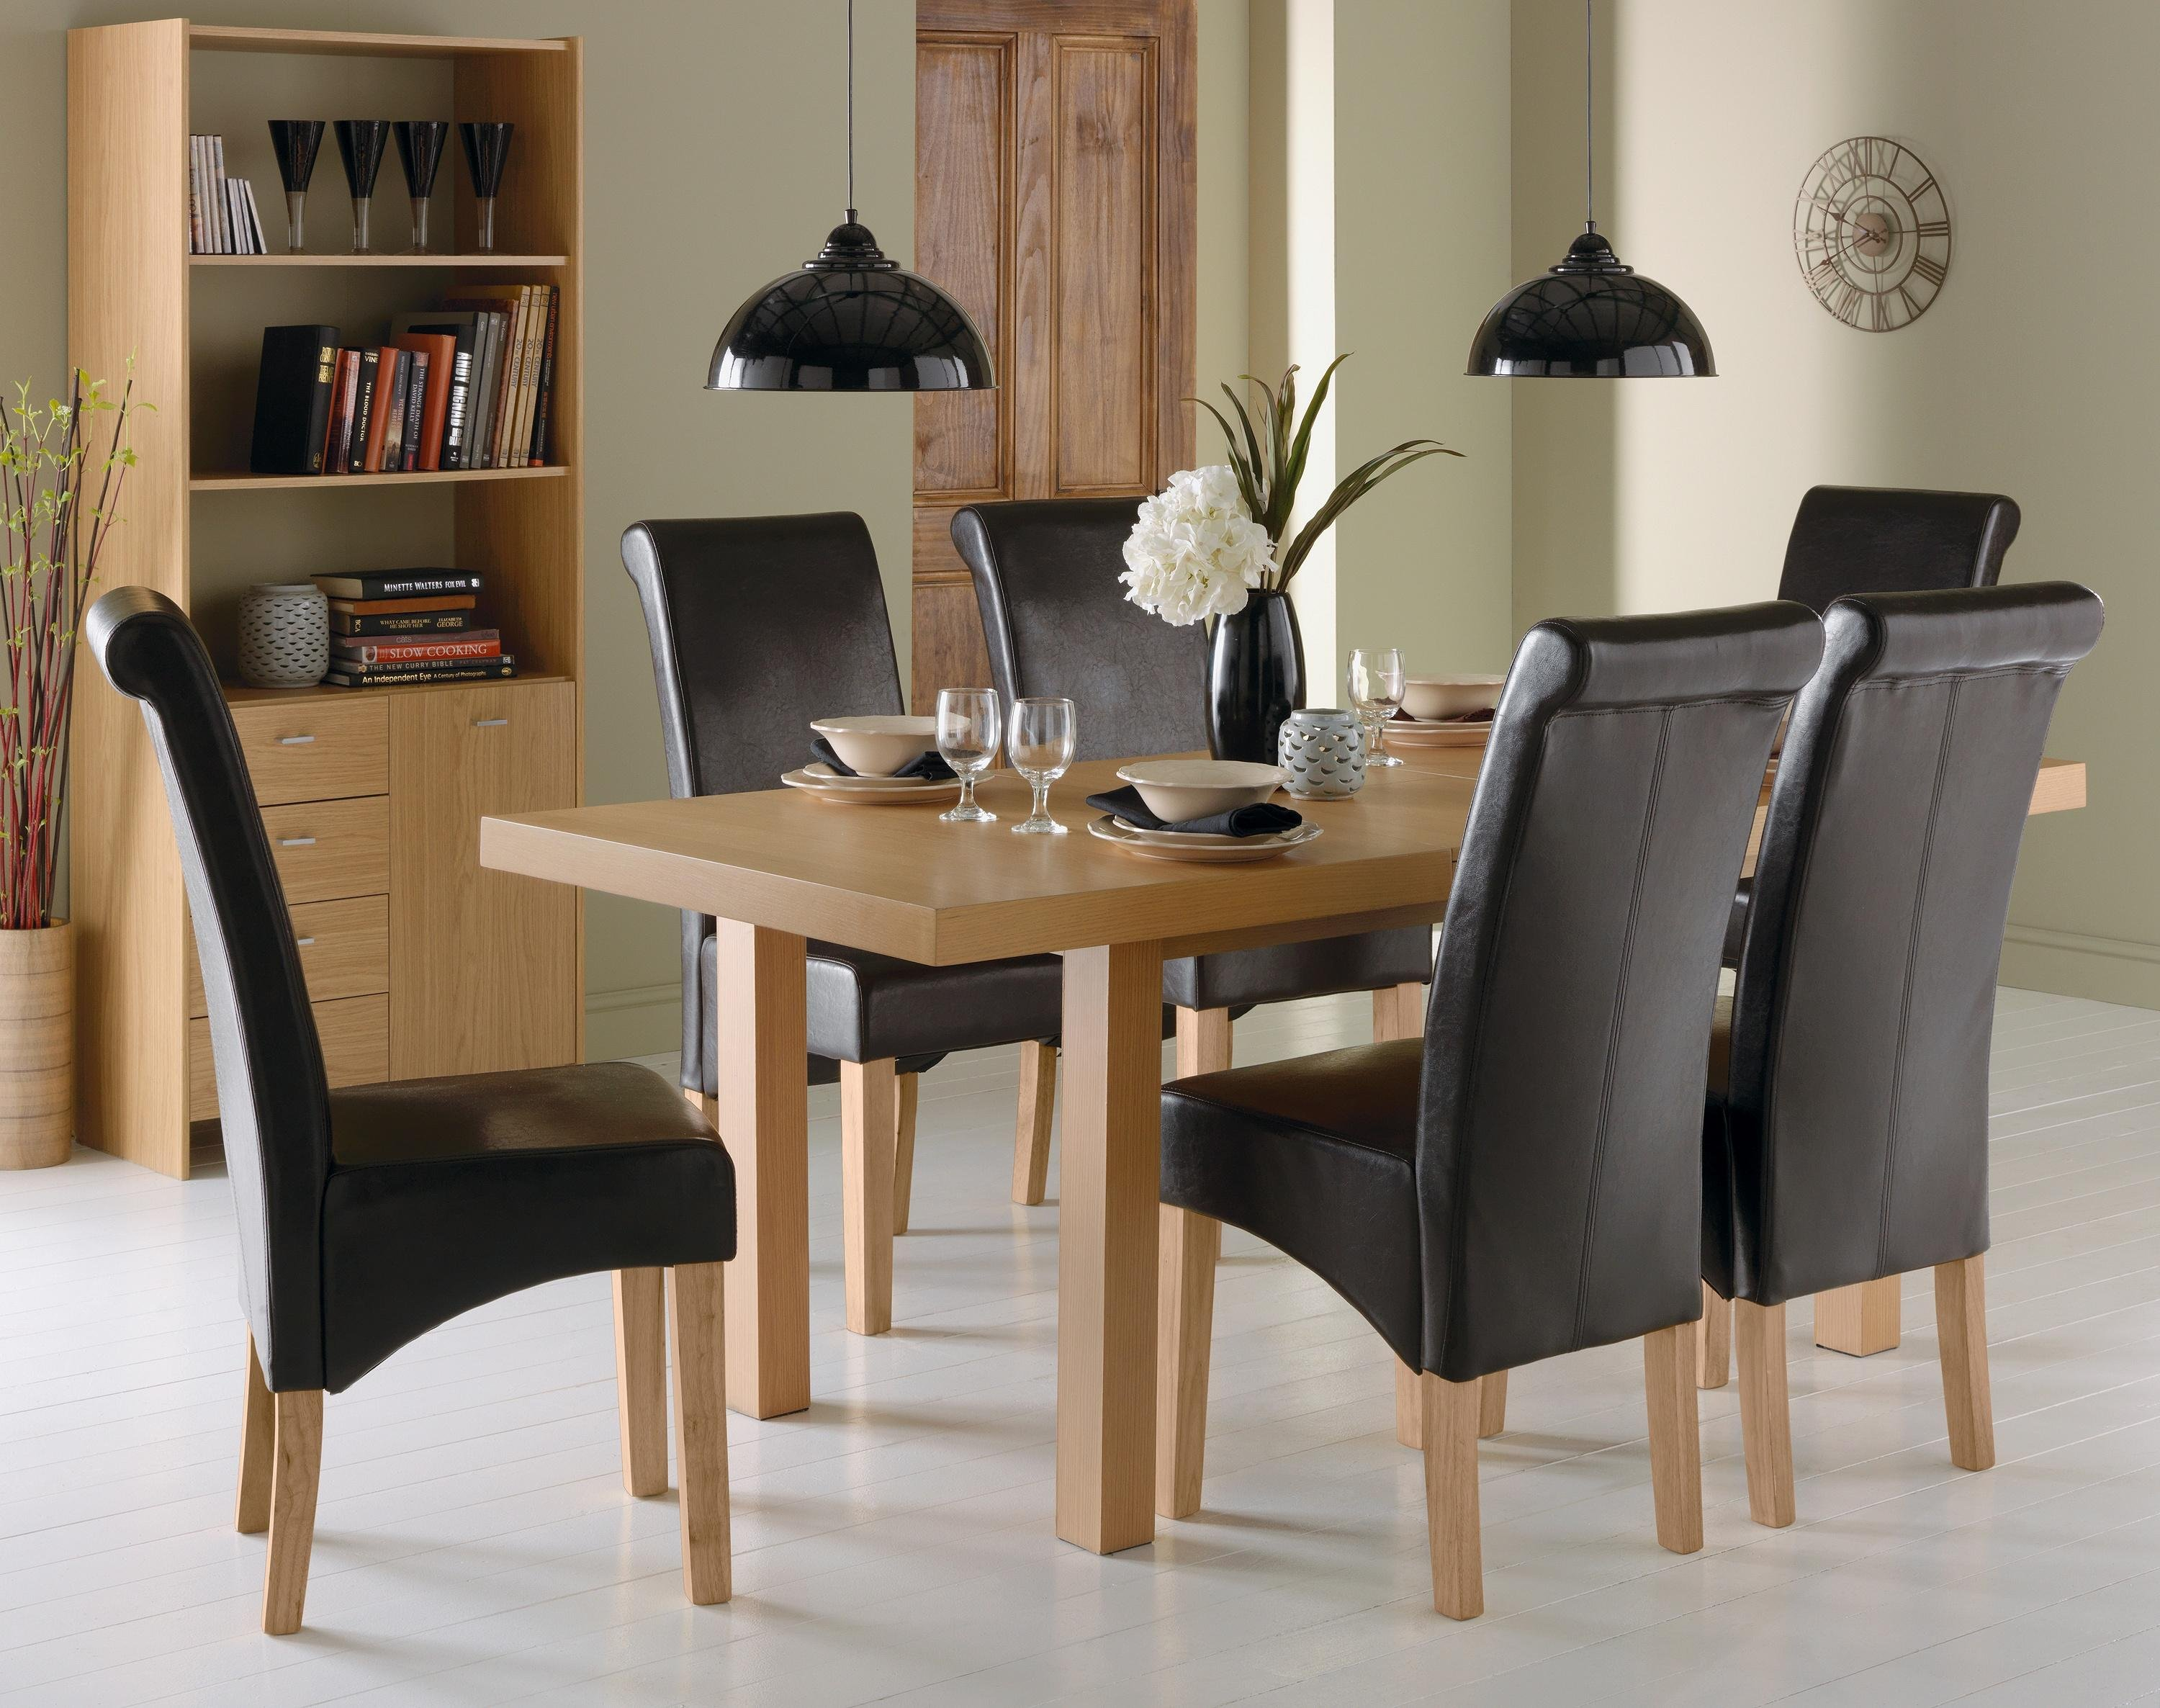 Buy Collection Wickham Dining Table amp 6 Chairs Oak Veneer  : 6037431RZ001AUC1435580Webampw570amph513 from www.argos.co.uk size 570 x 513 jpeg 44kB